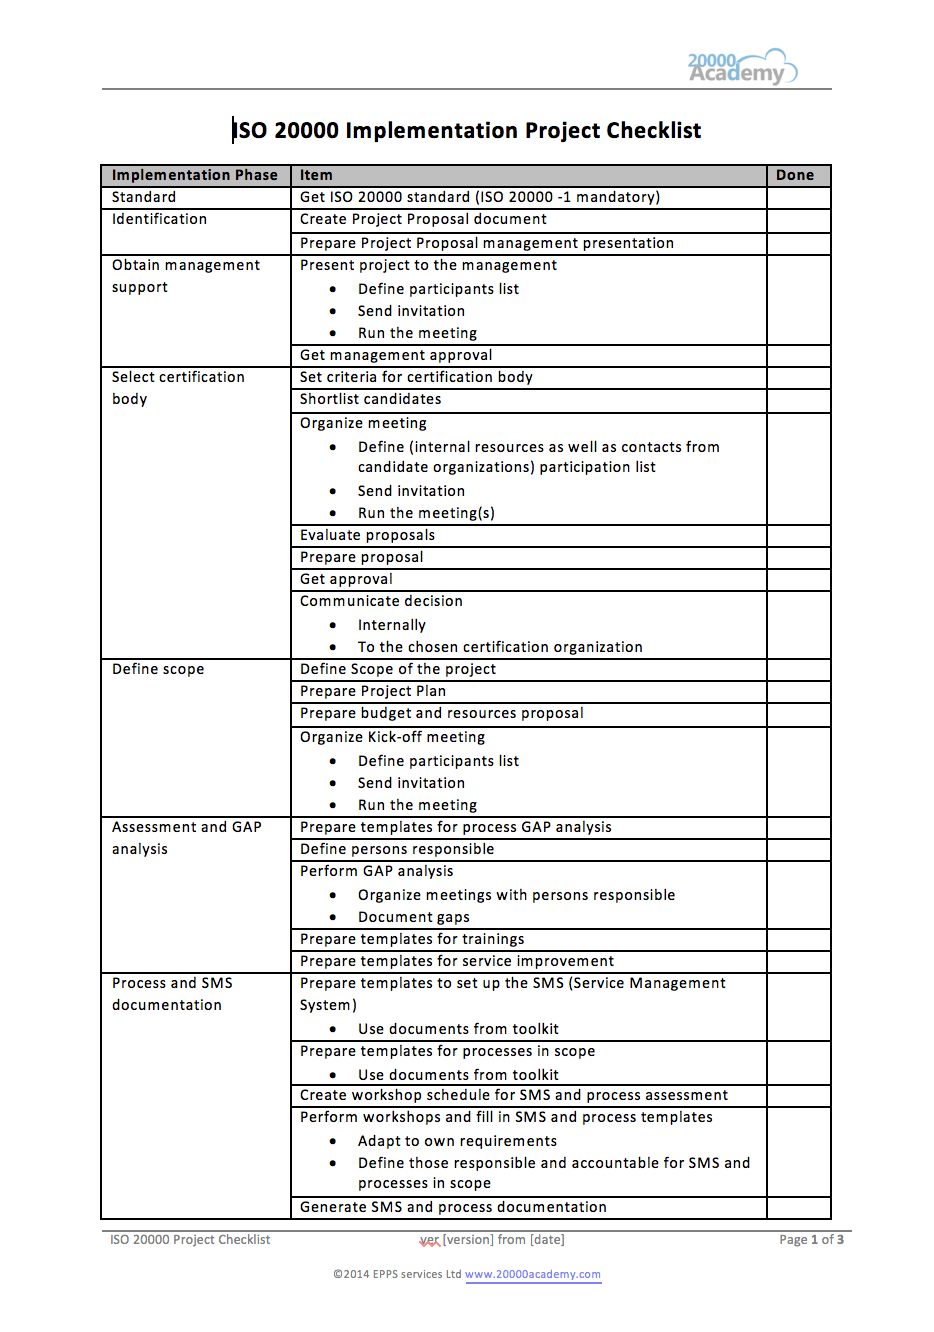 ISO20000_Implementation_Project_Checklist_20000Academy_EN.png